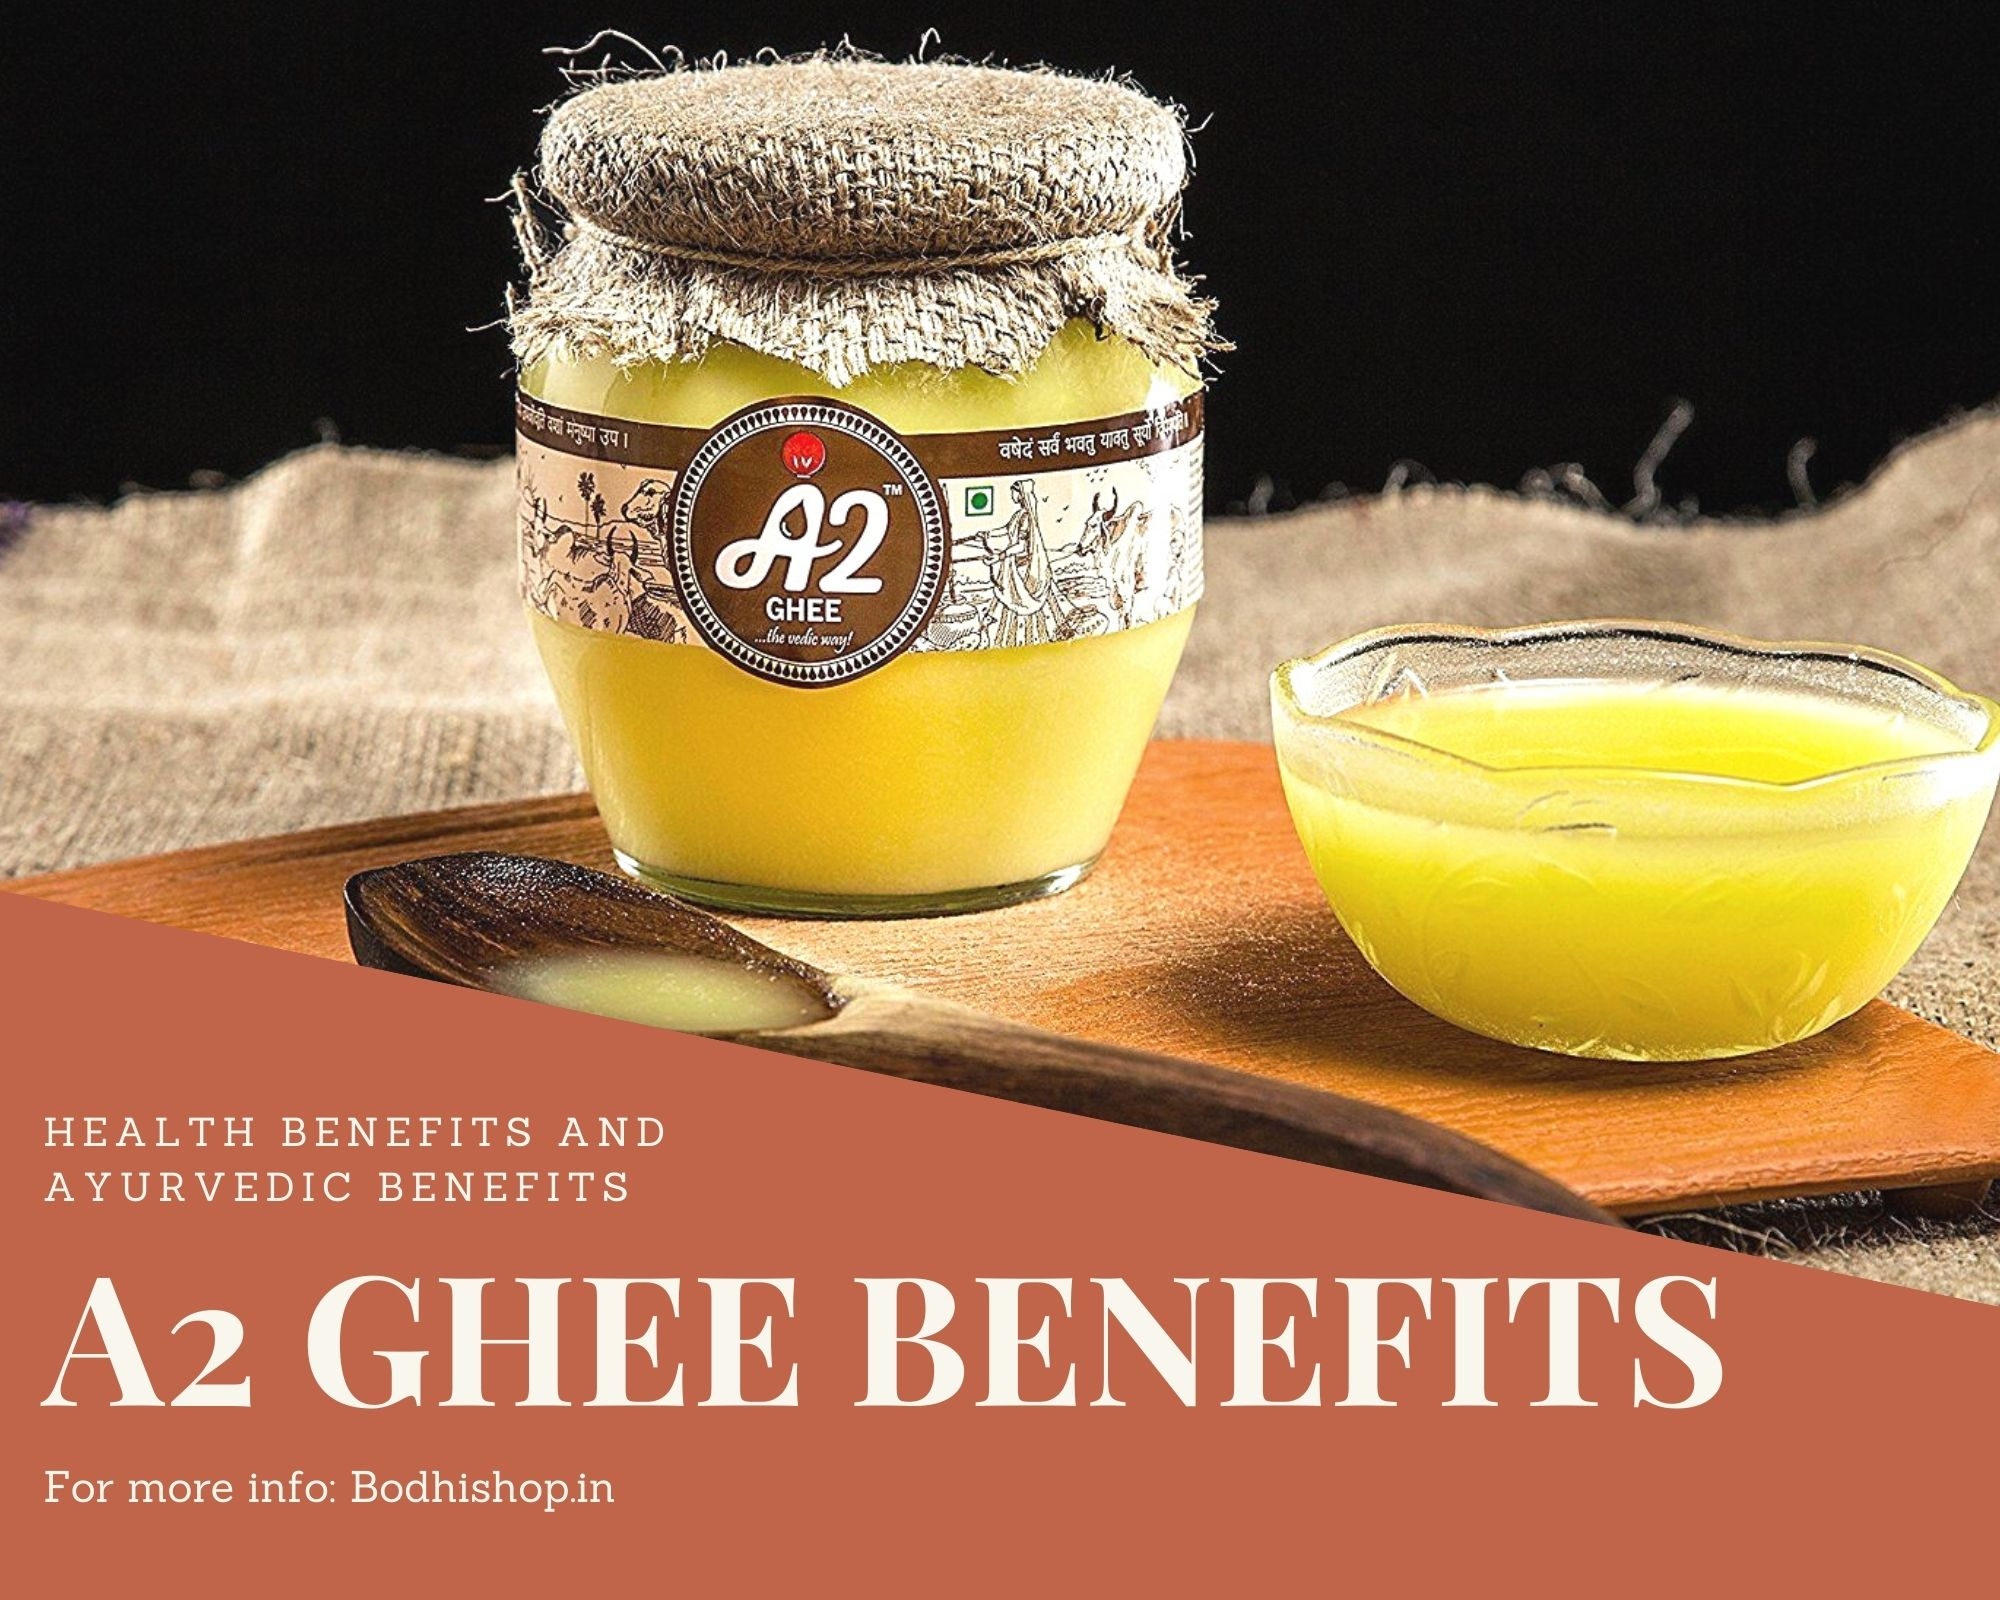 Benefits of A2 Ghee as per Ayurveda